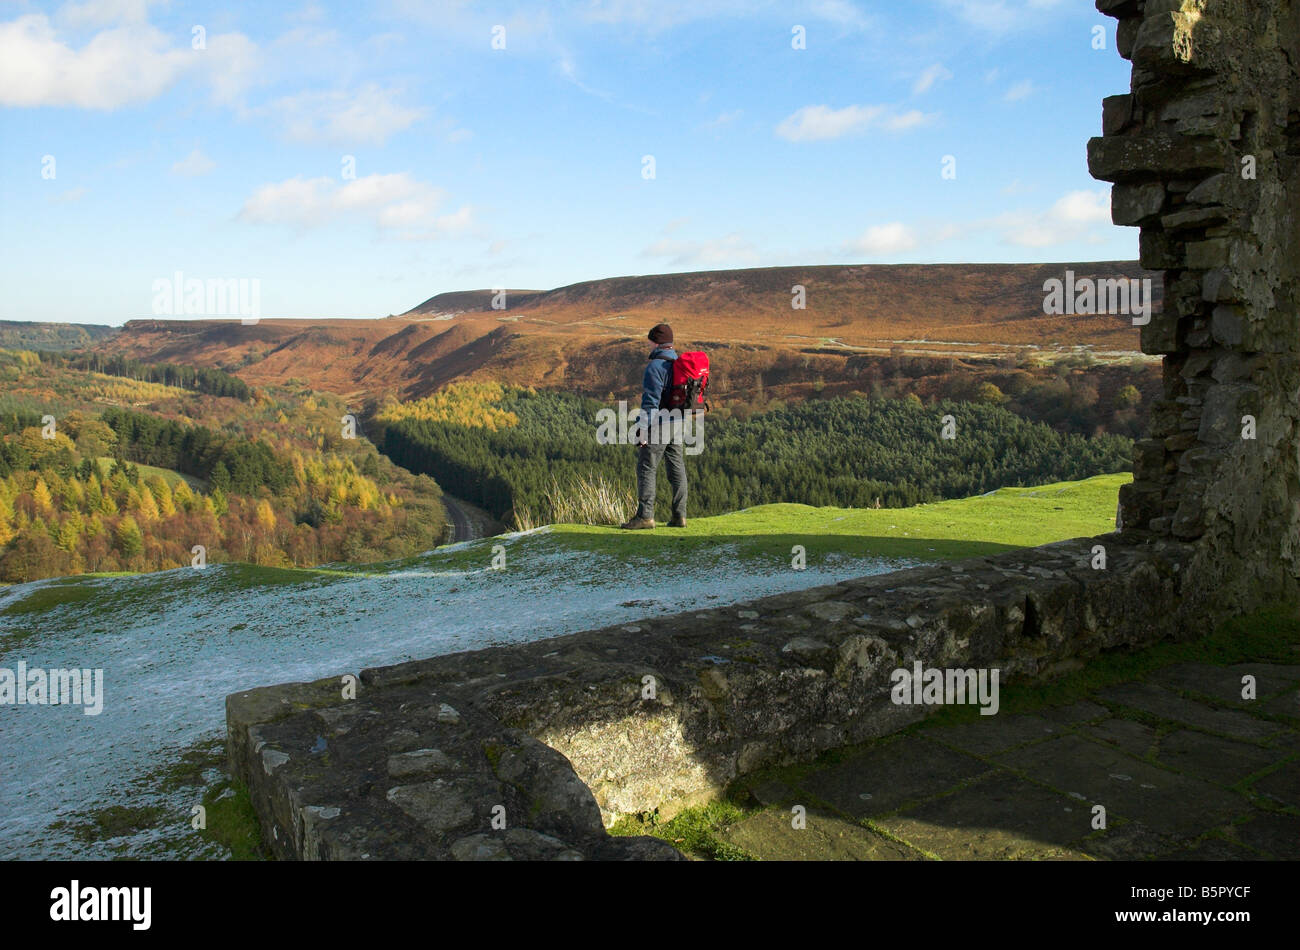 A walker at Skelton Tower overlooking Newton Dale in the North York Moors. - Stock Image